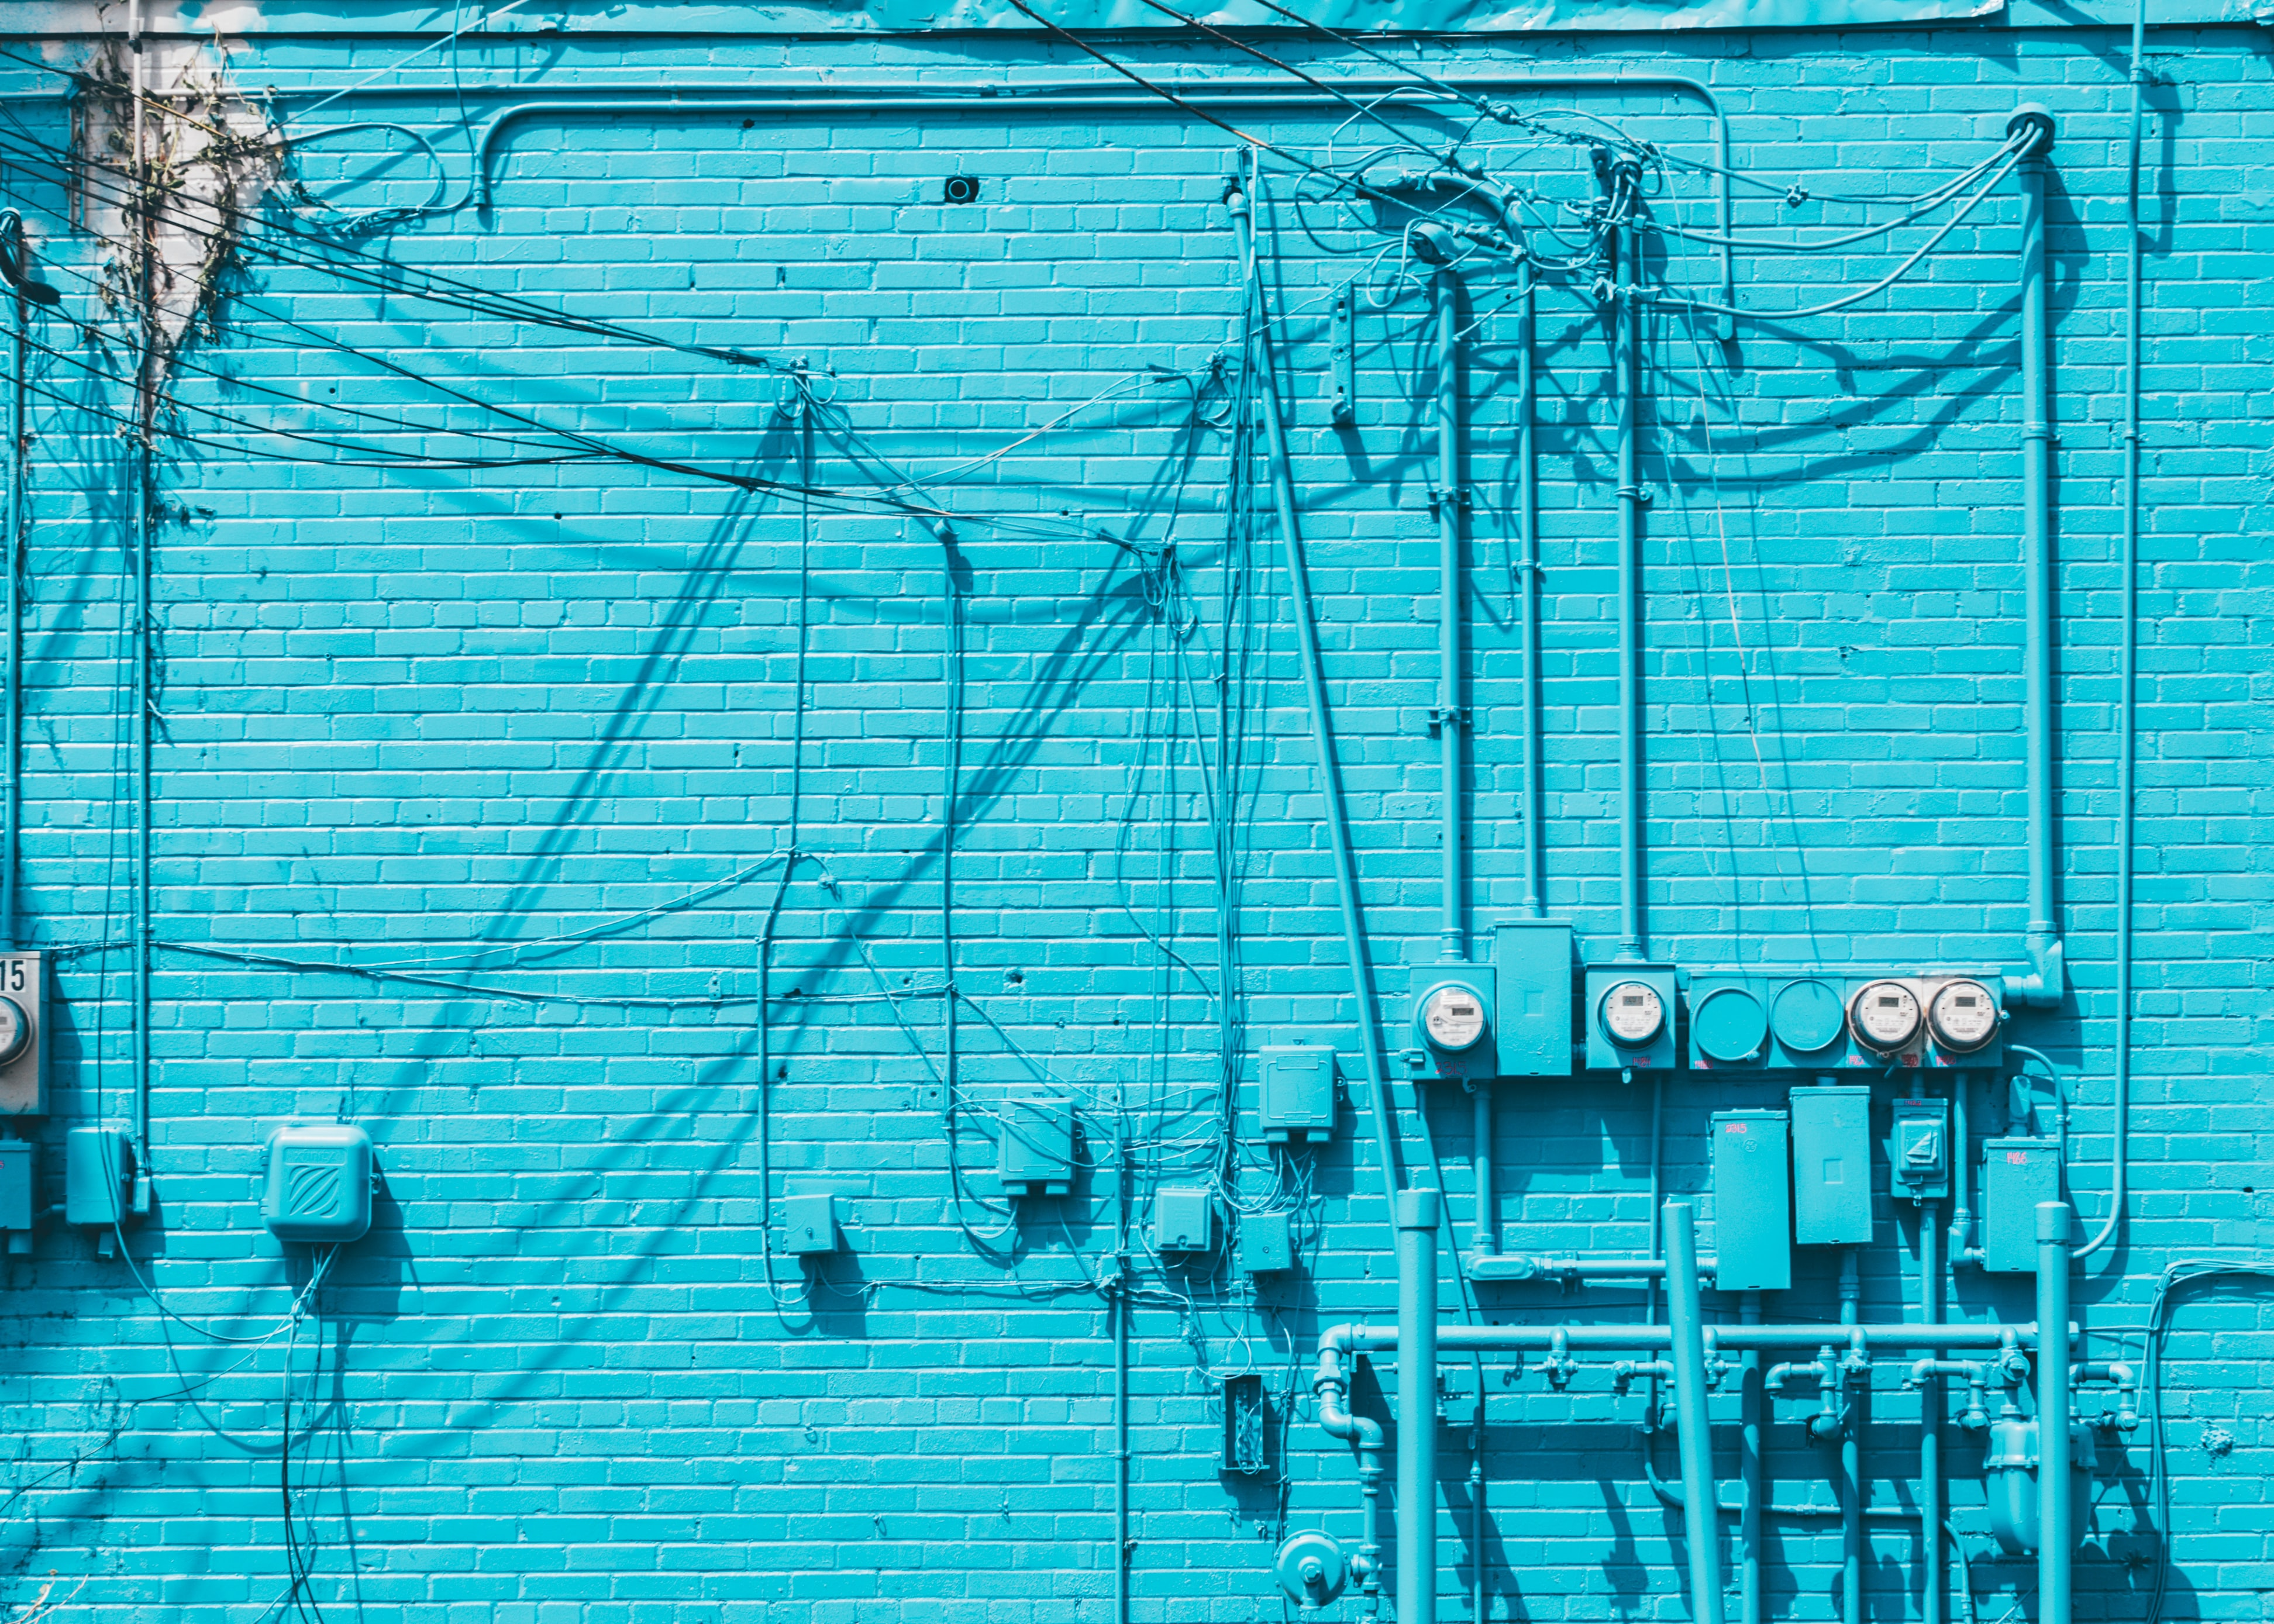 electric meter on blue brick wall